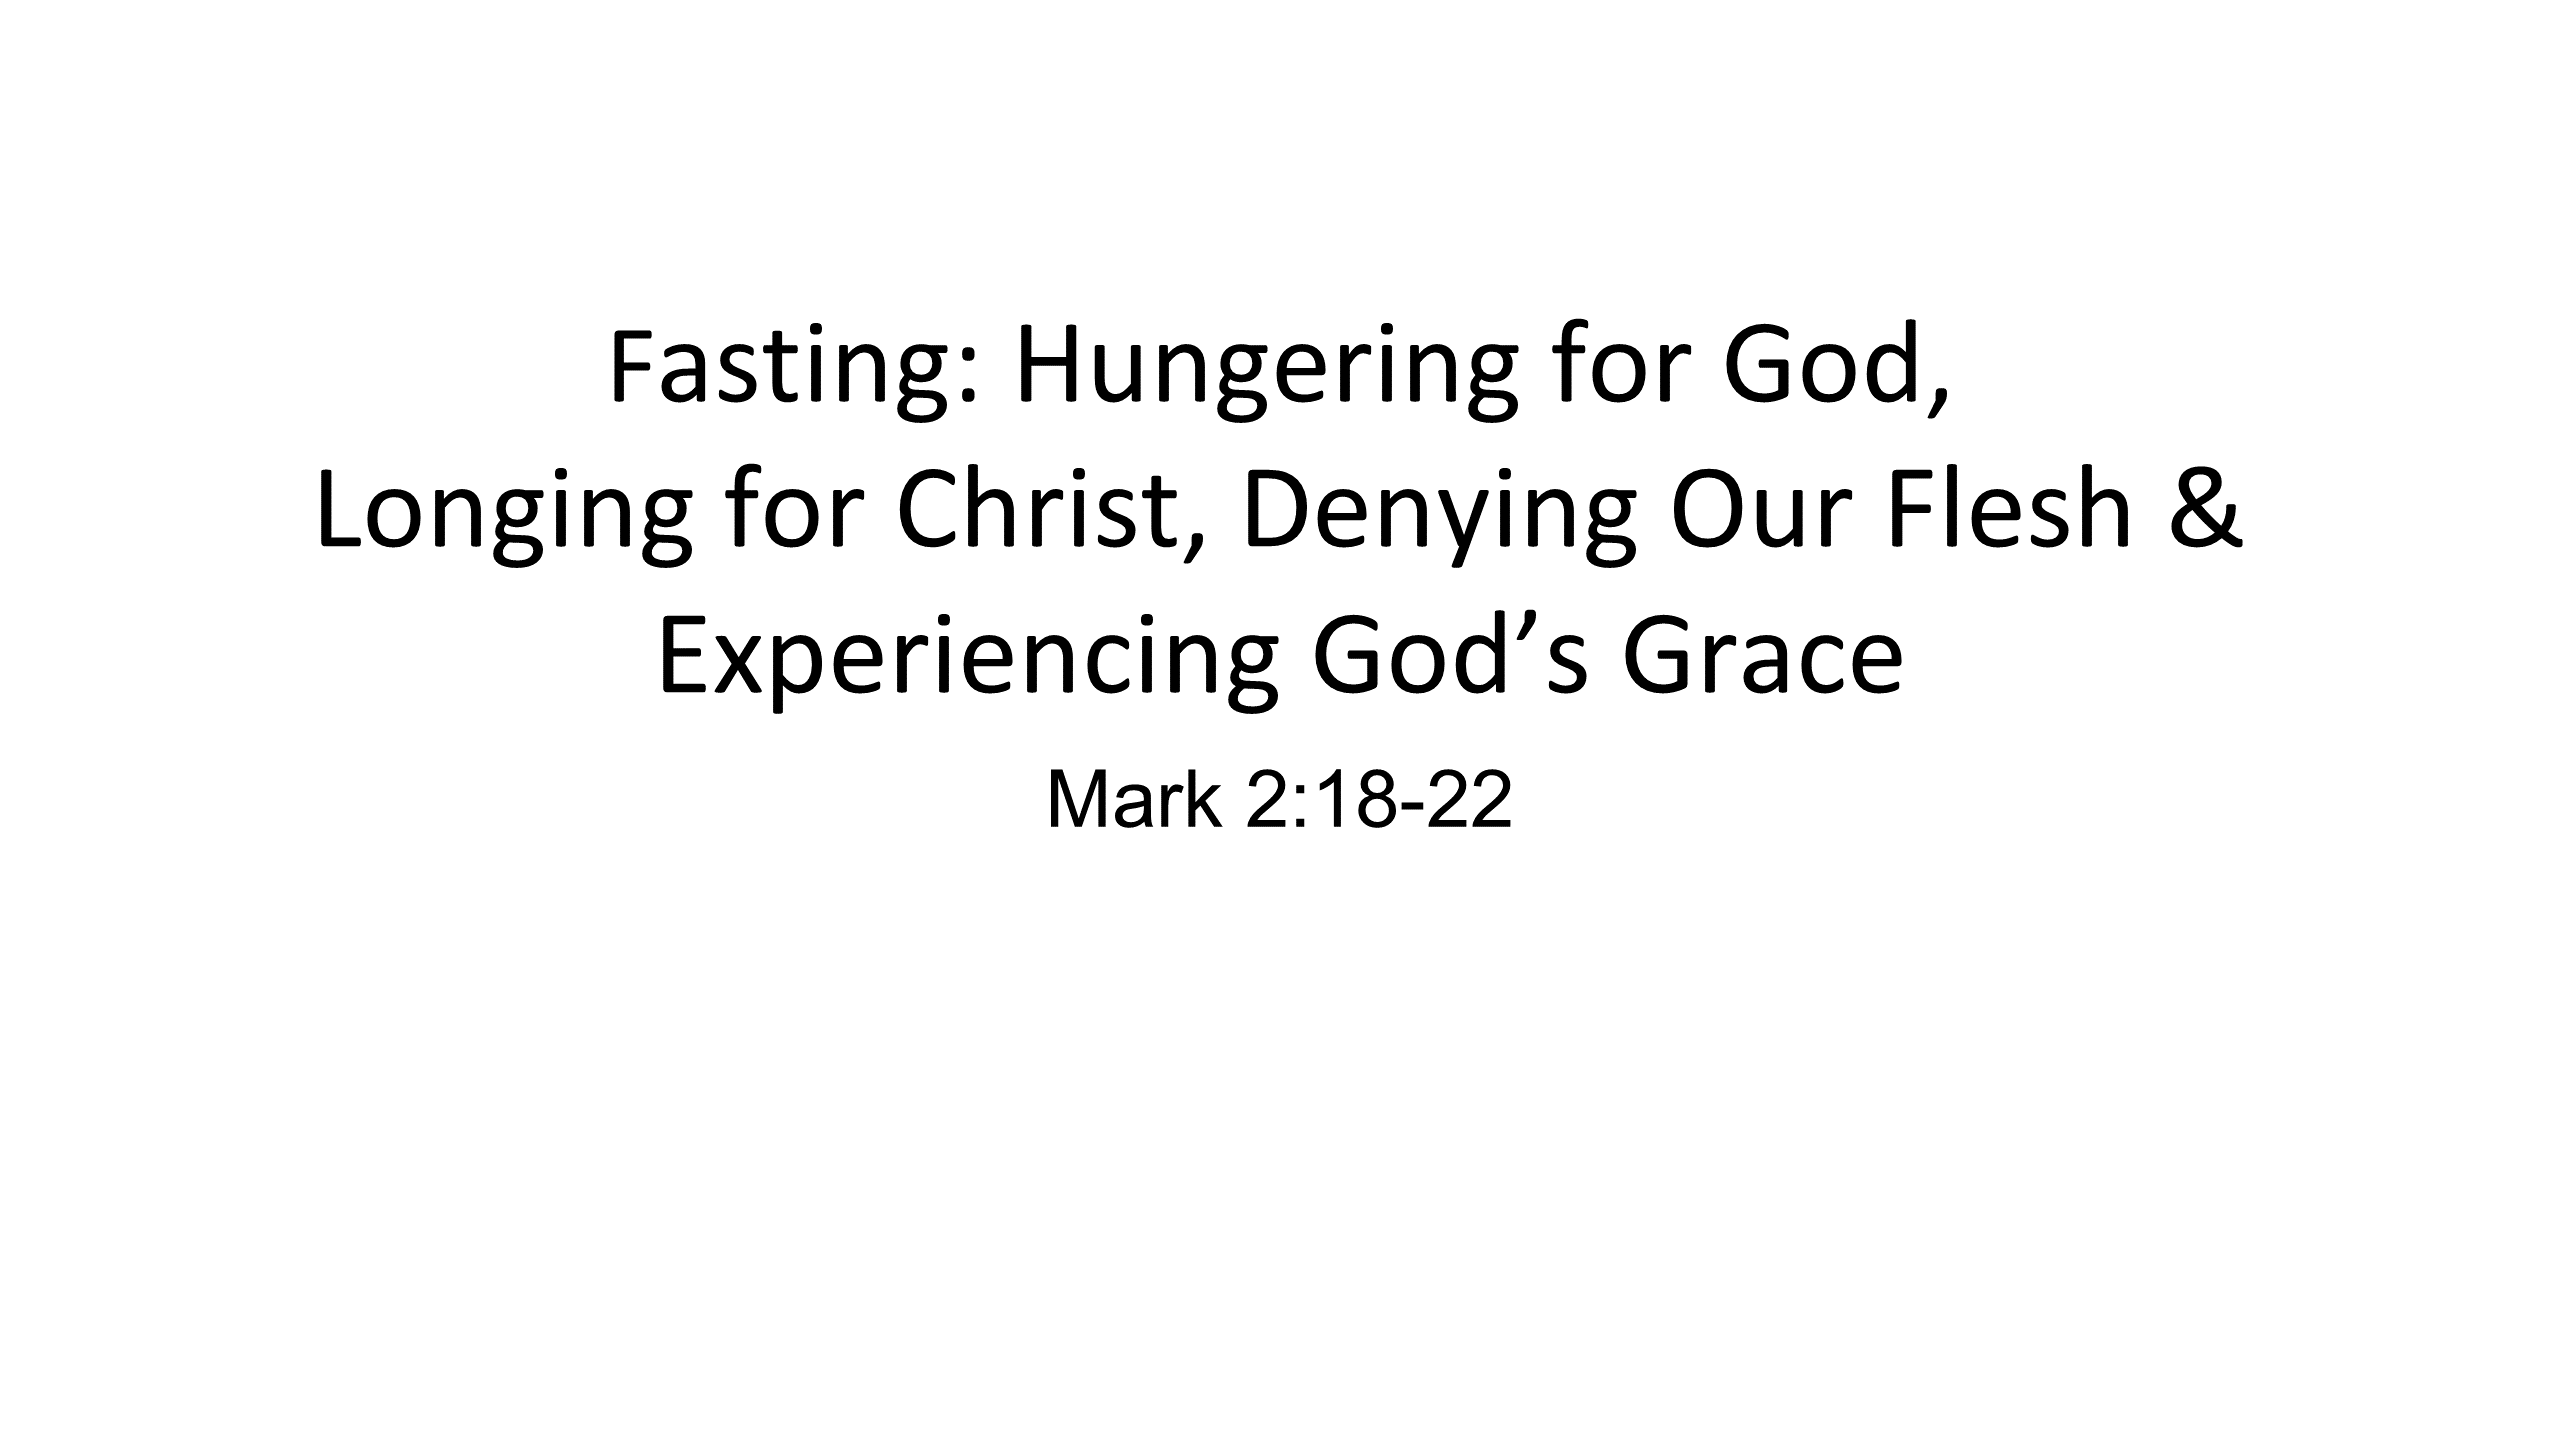 HFG-03 - Fasting - Hungering For God, Longing For Christ, Denying Our Flesh & Experiencing God's Grace (1)